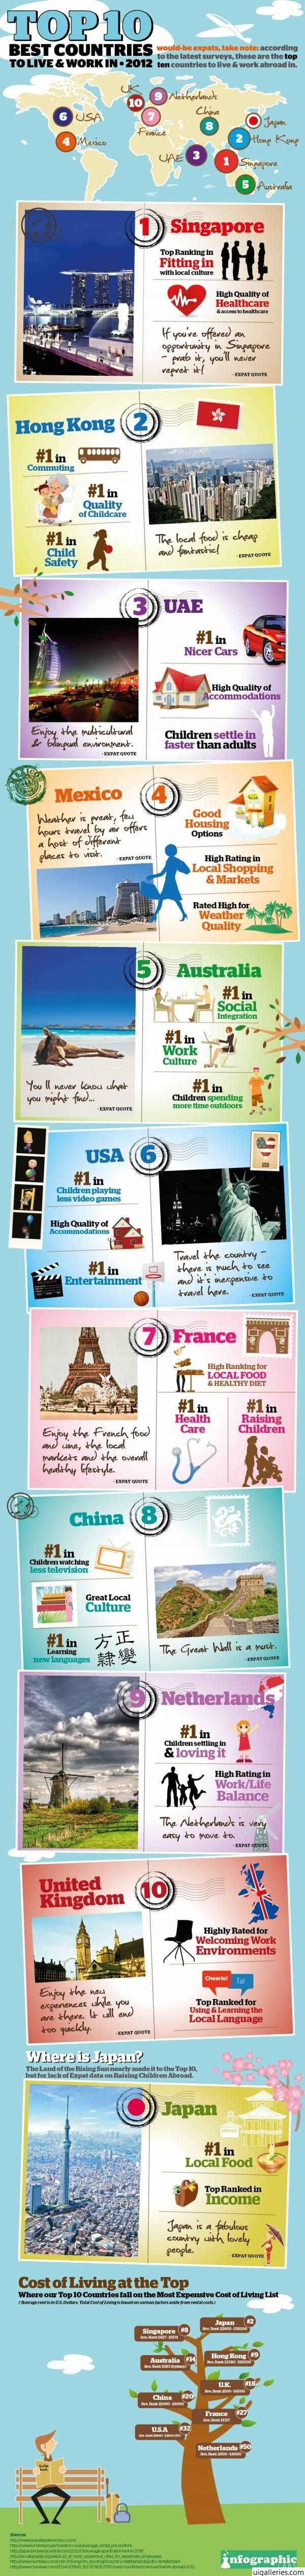 Infographic : TOP 10 Best countries to live & work in 2012